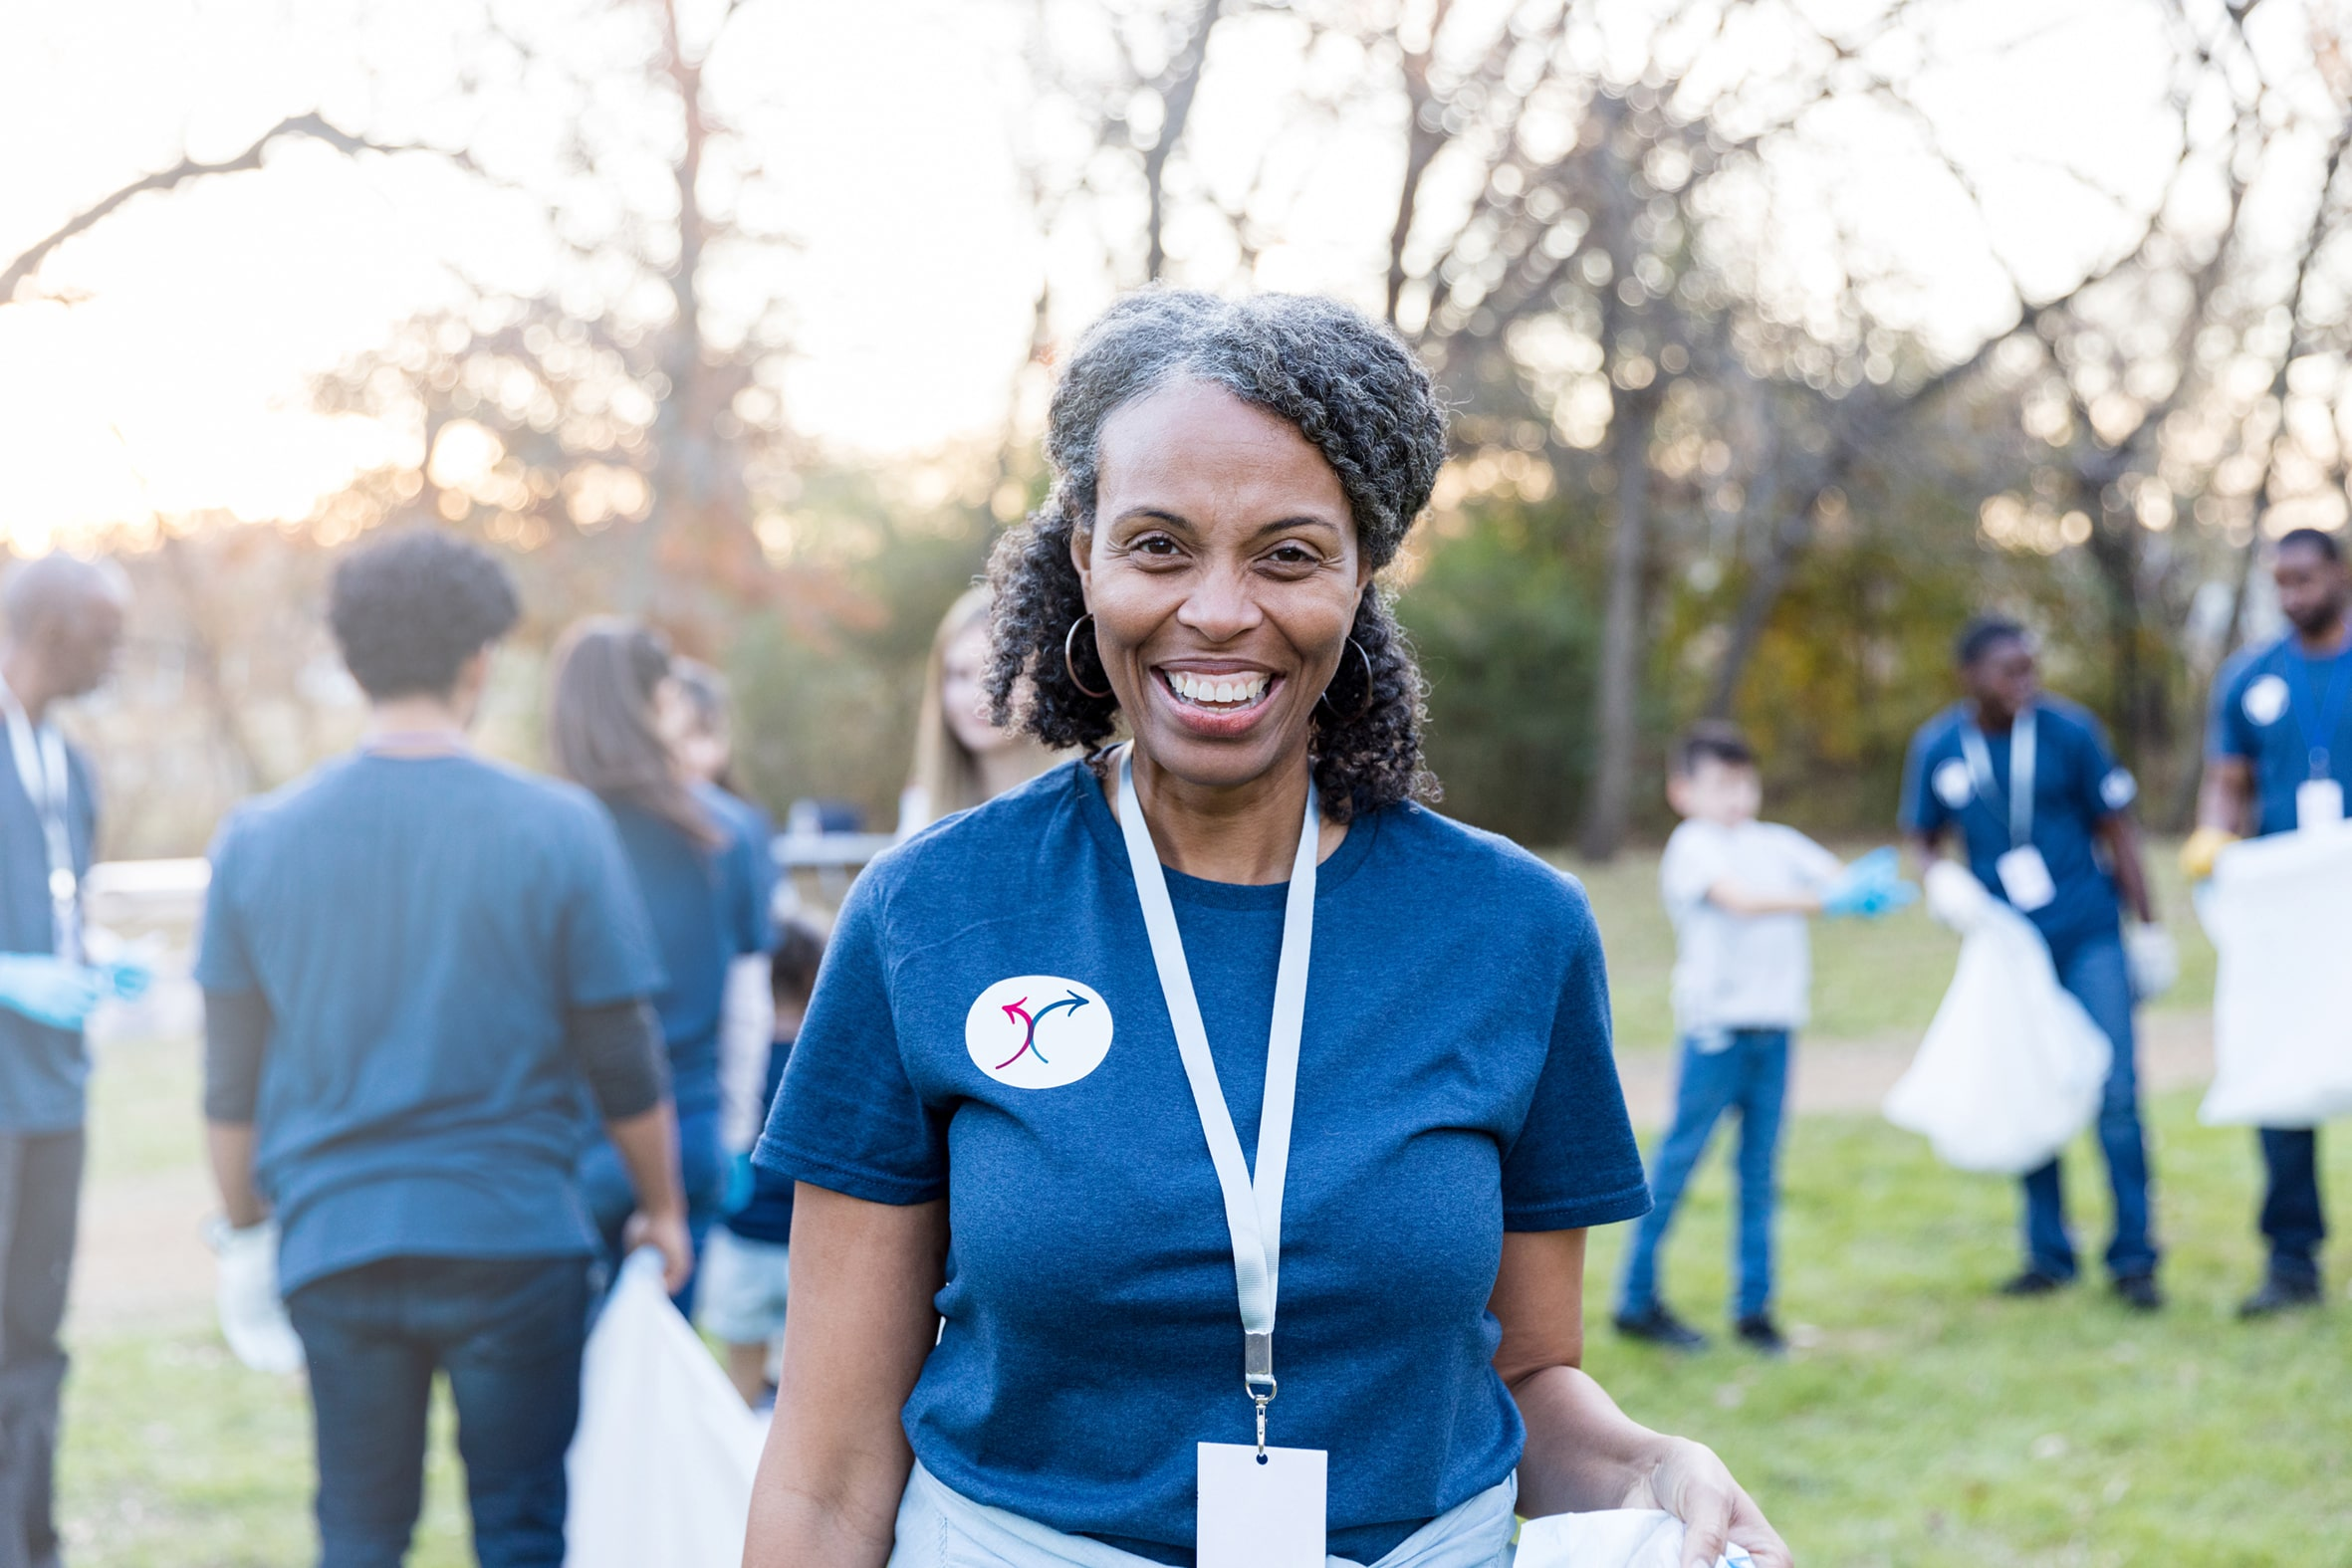 Confident woman participating in community event